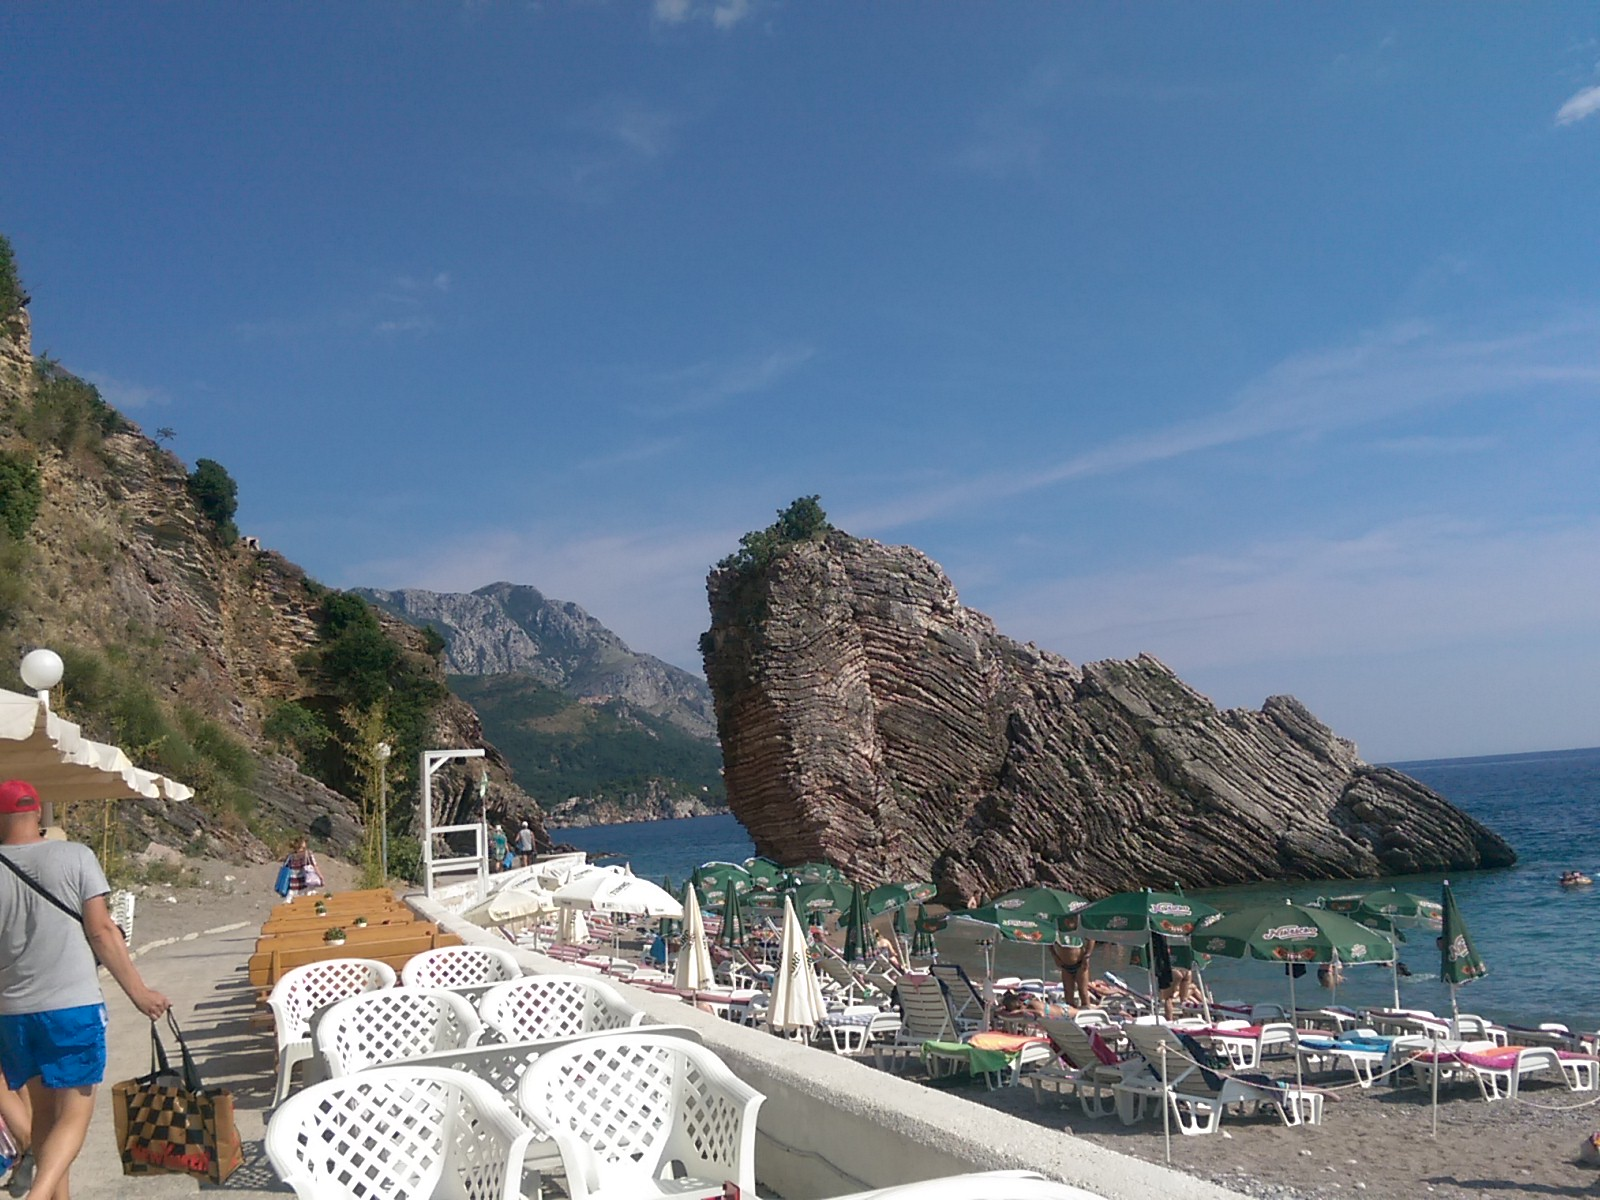 A stone beach covered in sunbeds and people, with people swimming in the sea around a rock shaped like a sinking ship